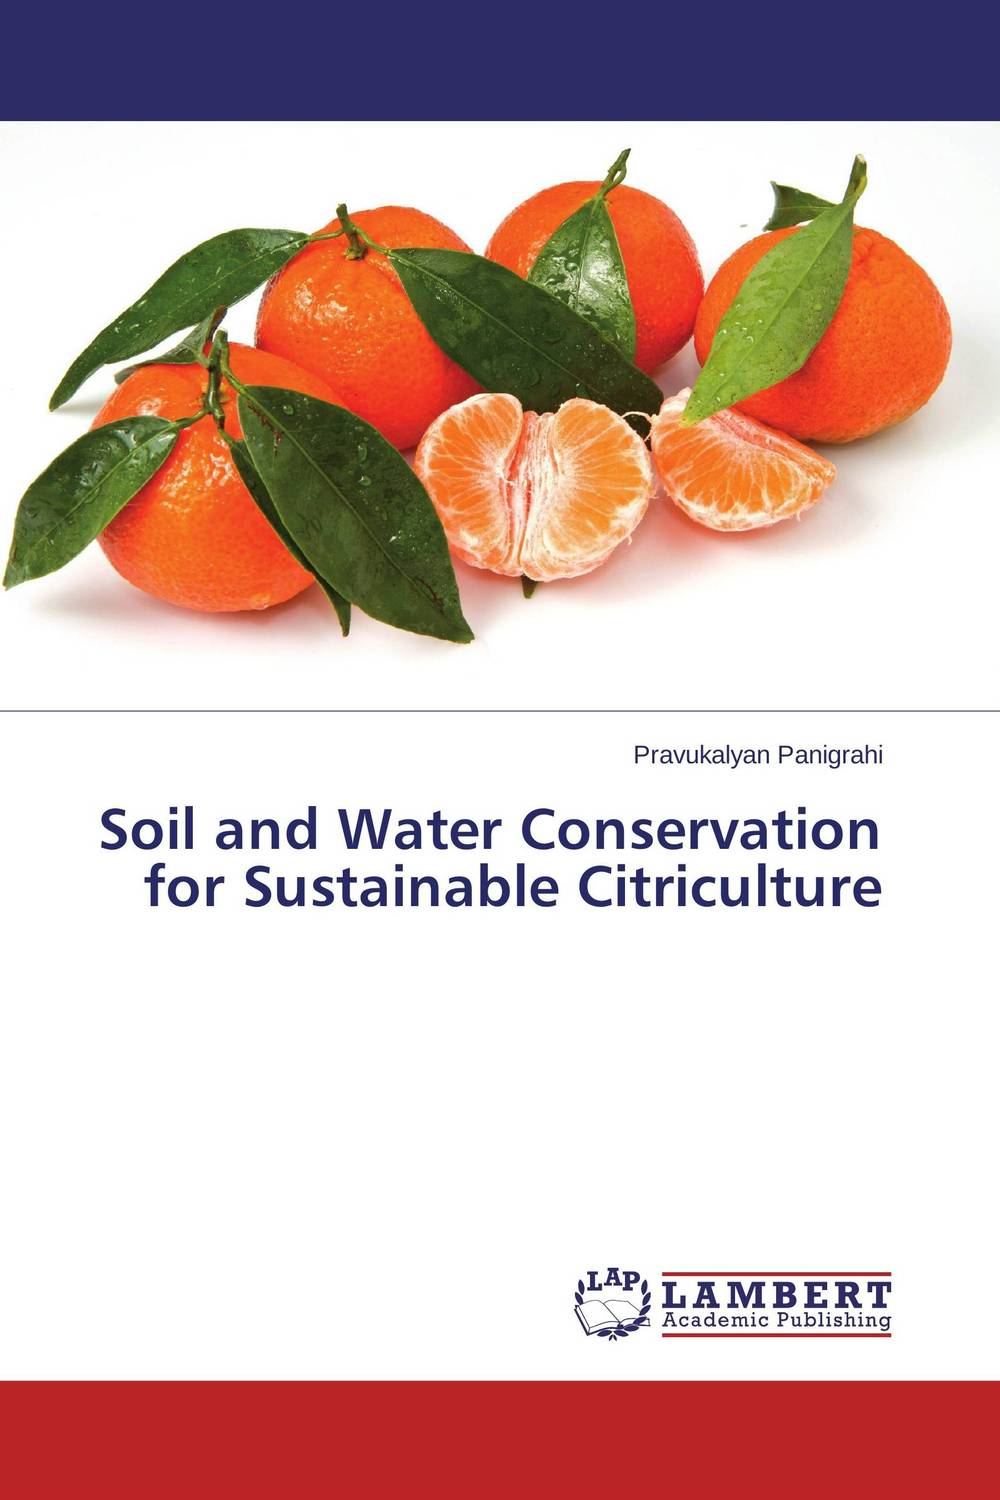 цена на Soil and Water Conservation for Sustainable Citriculture